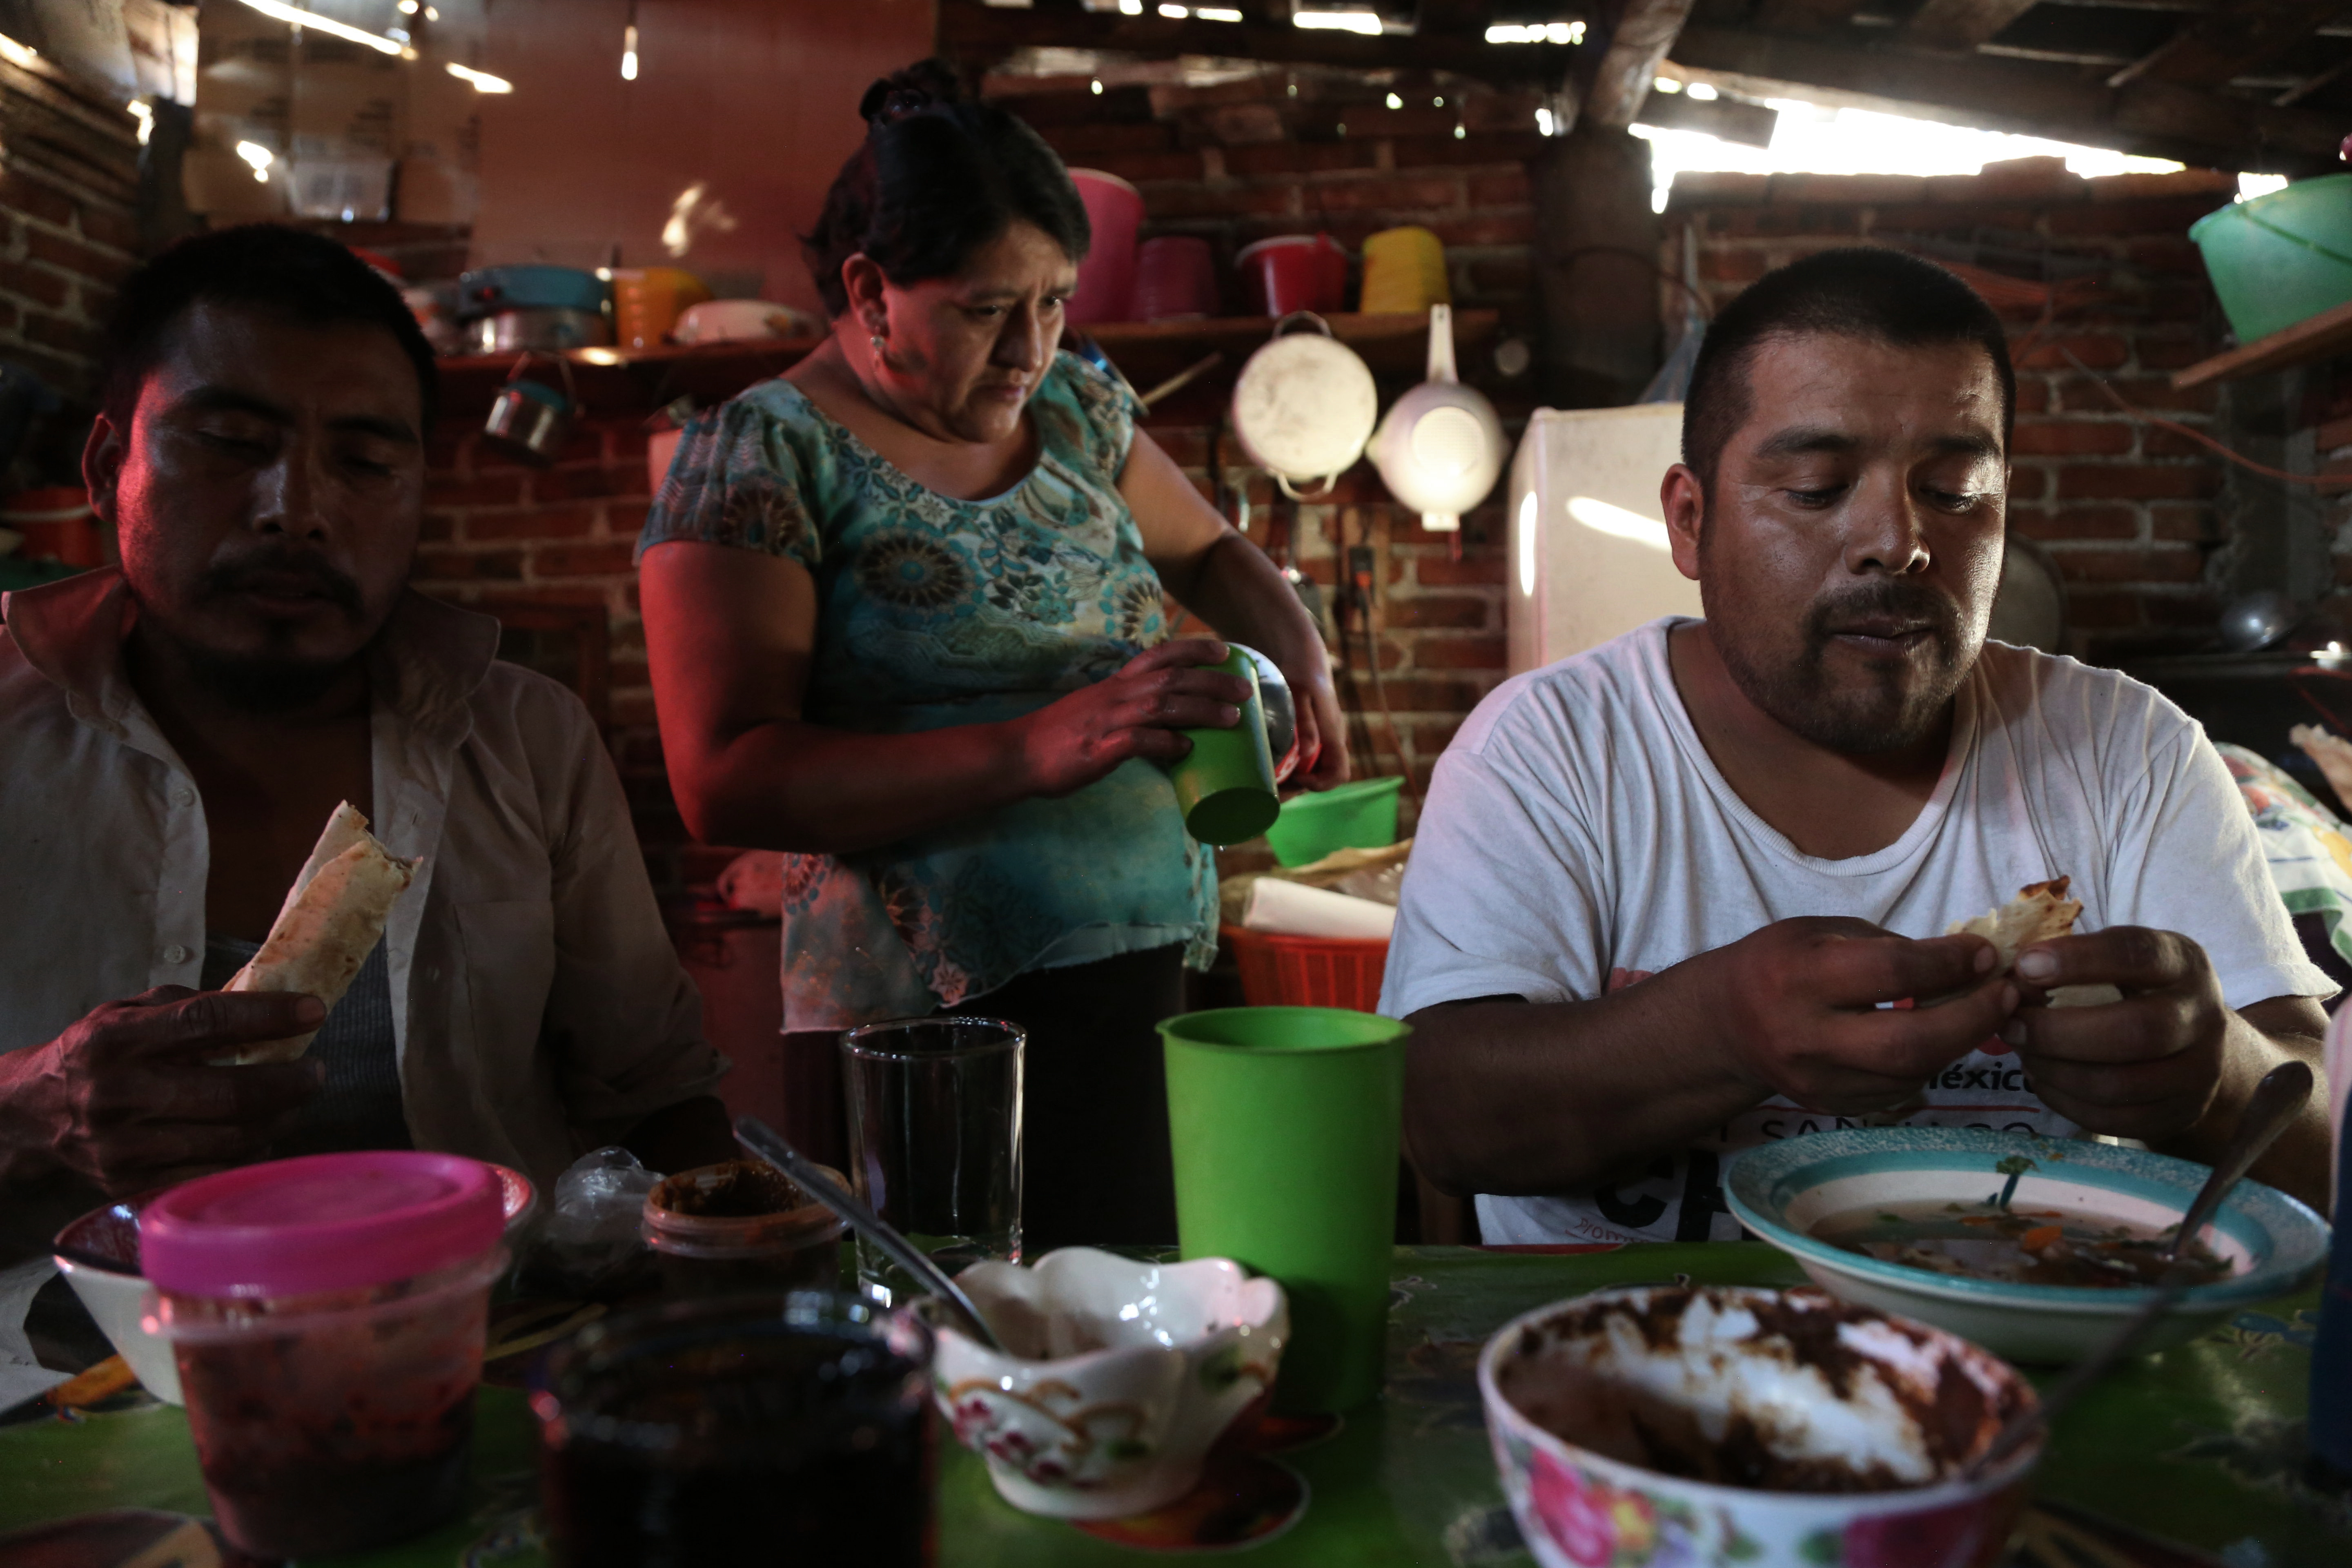 Fortunato Angeles and his brother-in-law, Raul Marin, eat pozole and fresh tortillas after a day at the palenque in San Juan del Rio, Oaxaca.